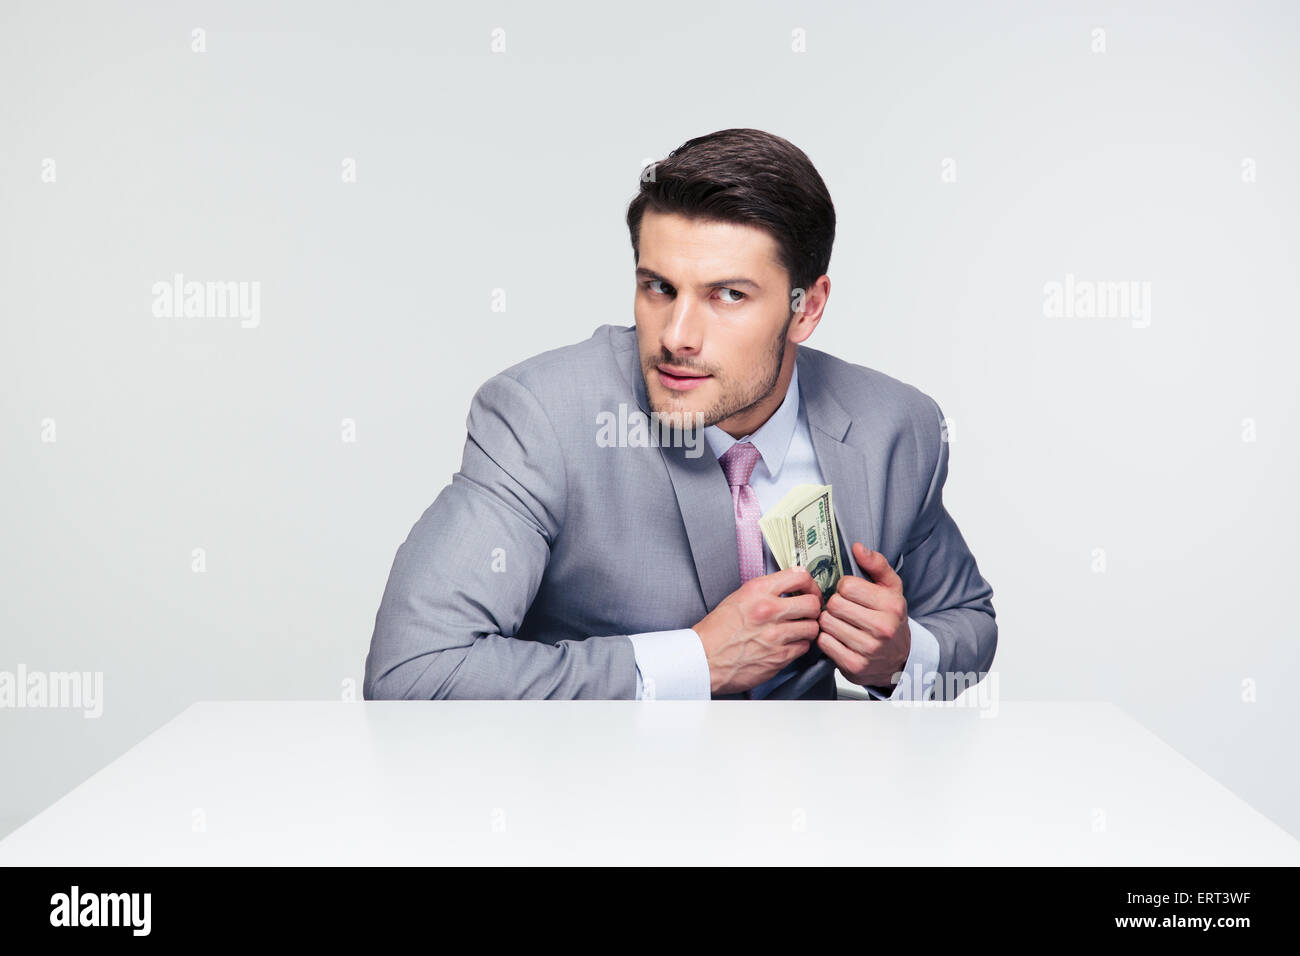 Businessman putting money in pocket over gray background and looking away - Stock Image